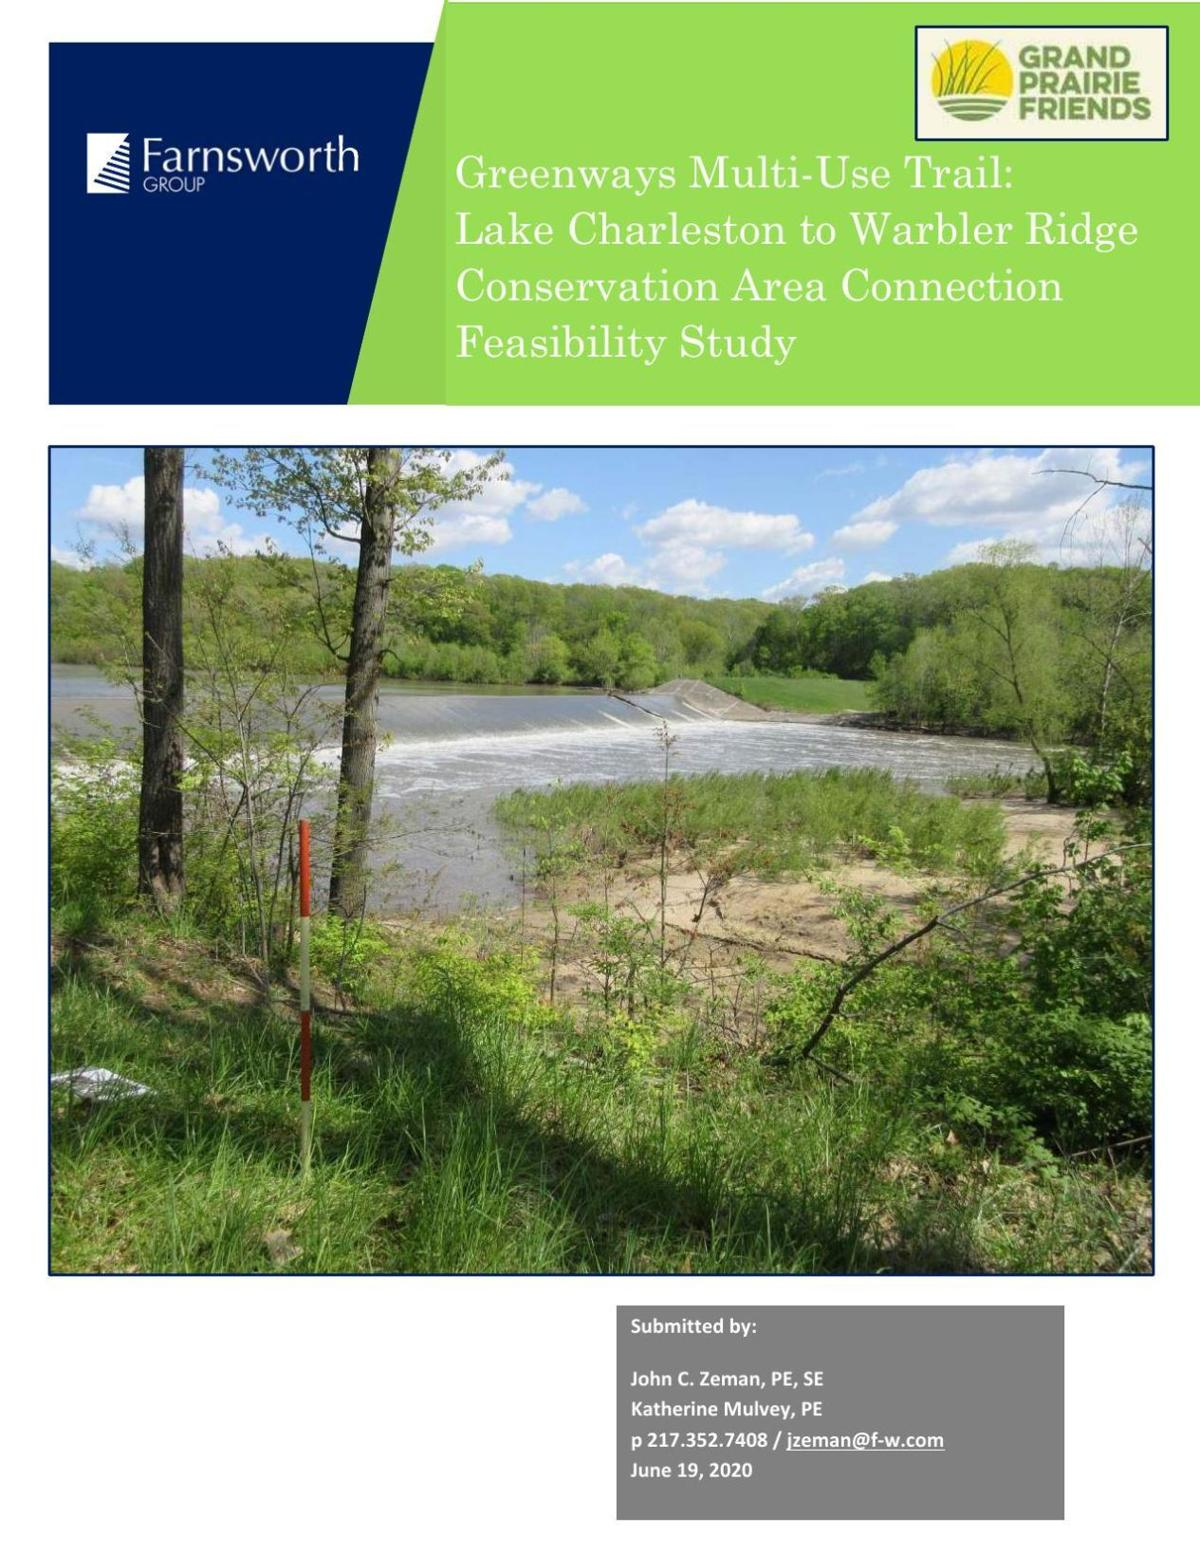 Lake Charleston bridge feasiblity study